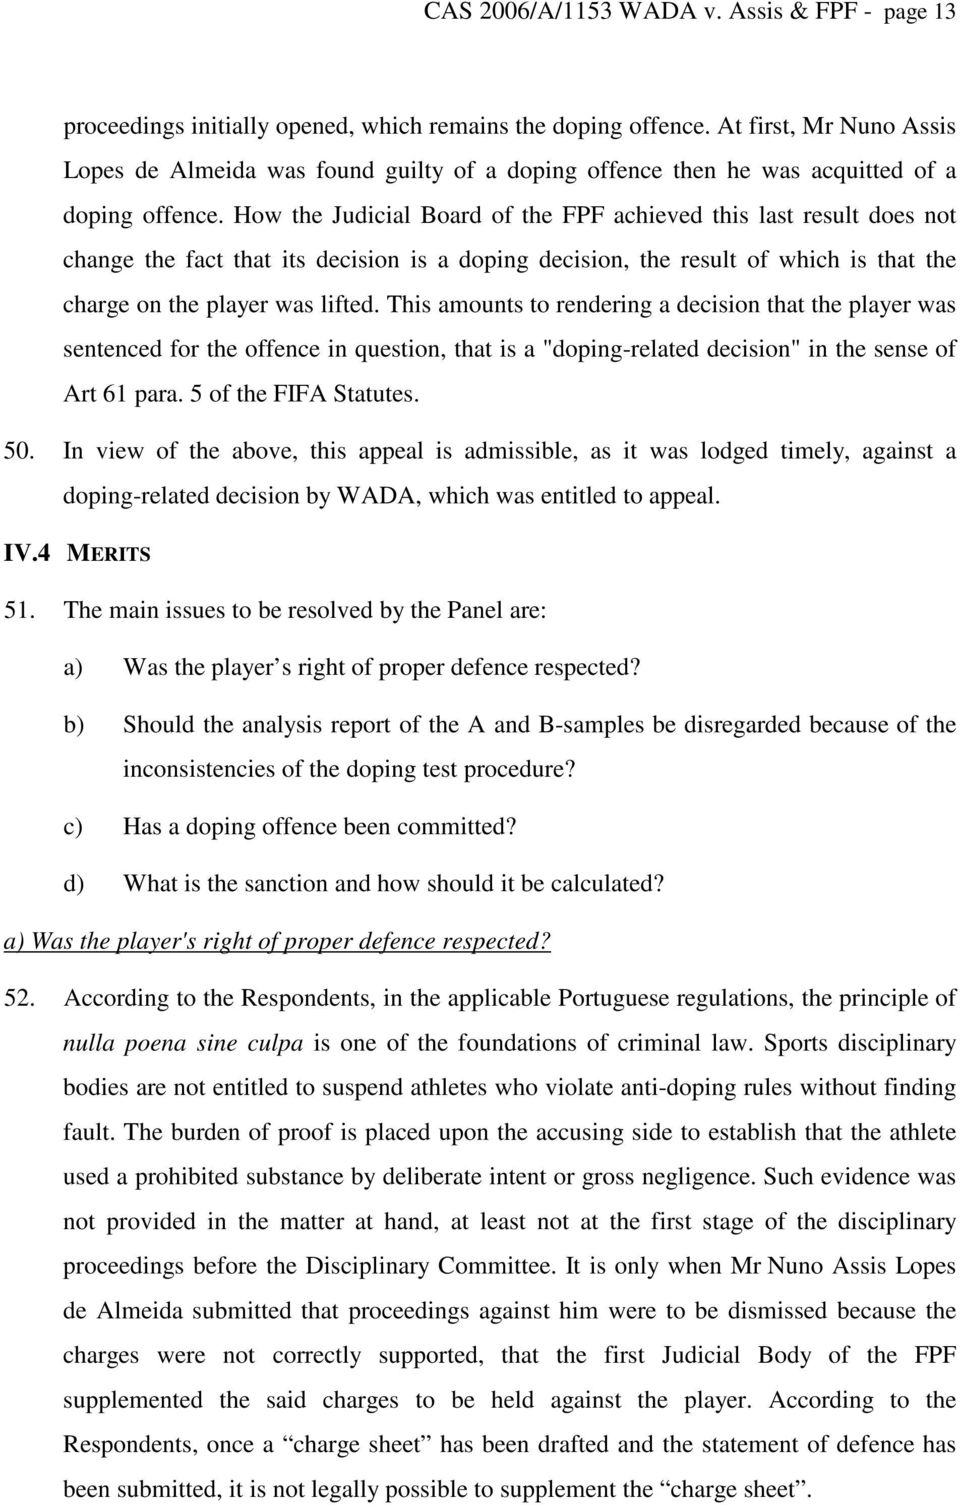 How the Judicial Board of the FPF achieved this last result does not change the fact that its decision is a doping decision, the result of which is that the charge on the player was lifted.